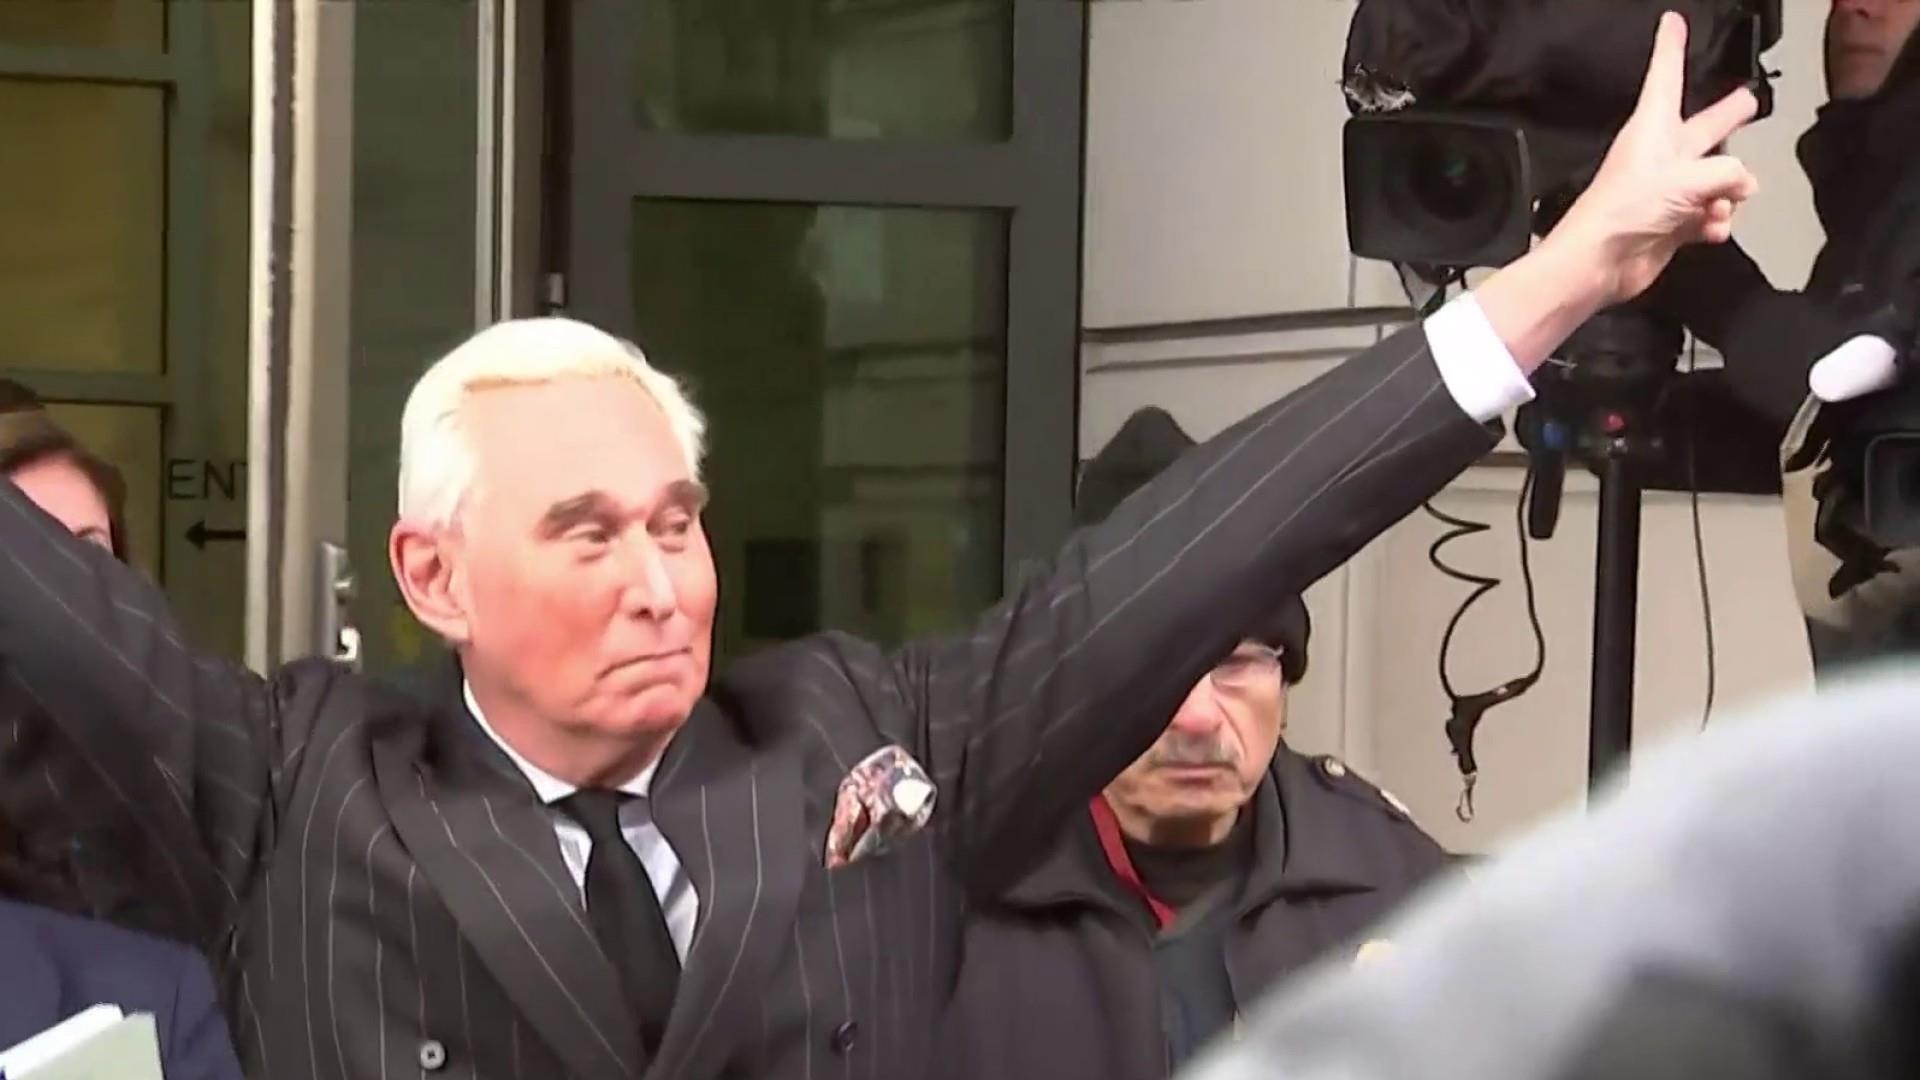 Judge considers gag for Roger Stone; October timeline projected